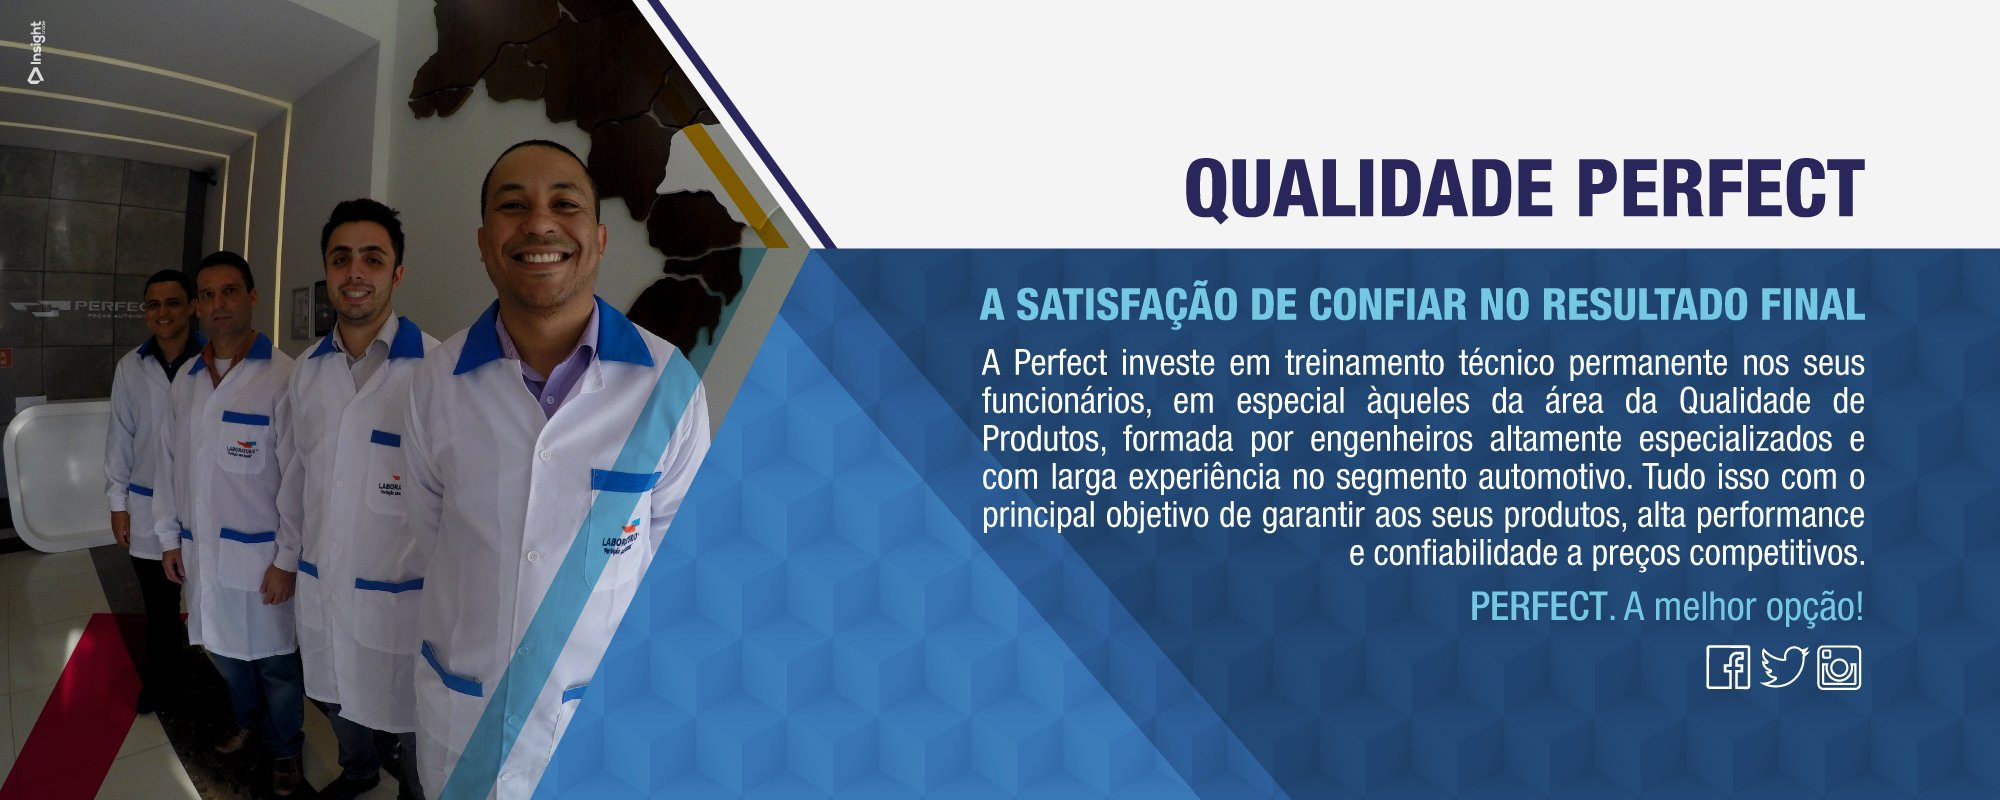 AF_BANNER_SITE_PERFECT_QUALIDADE_2017.jpg